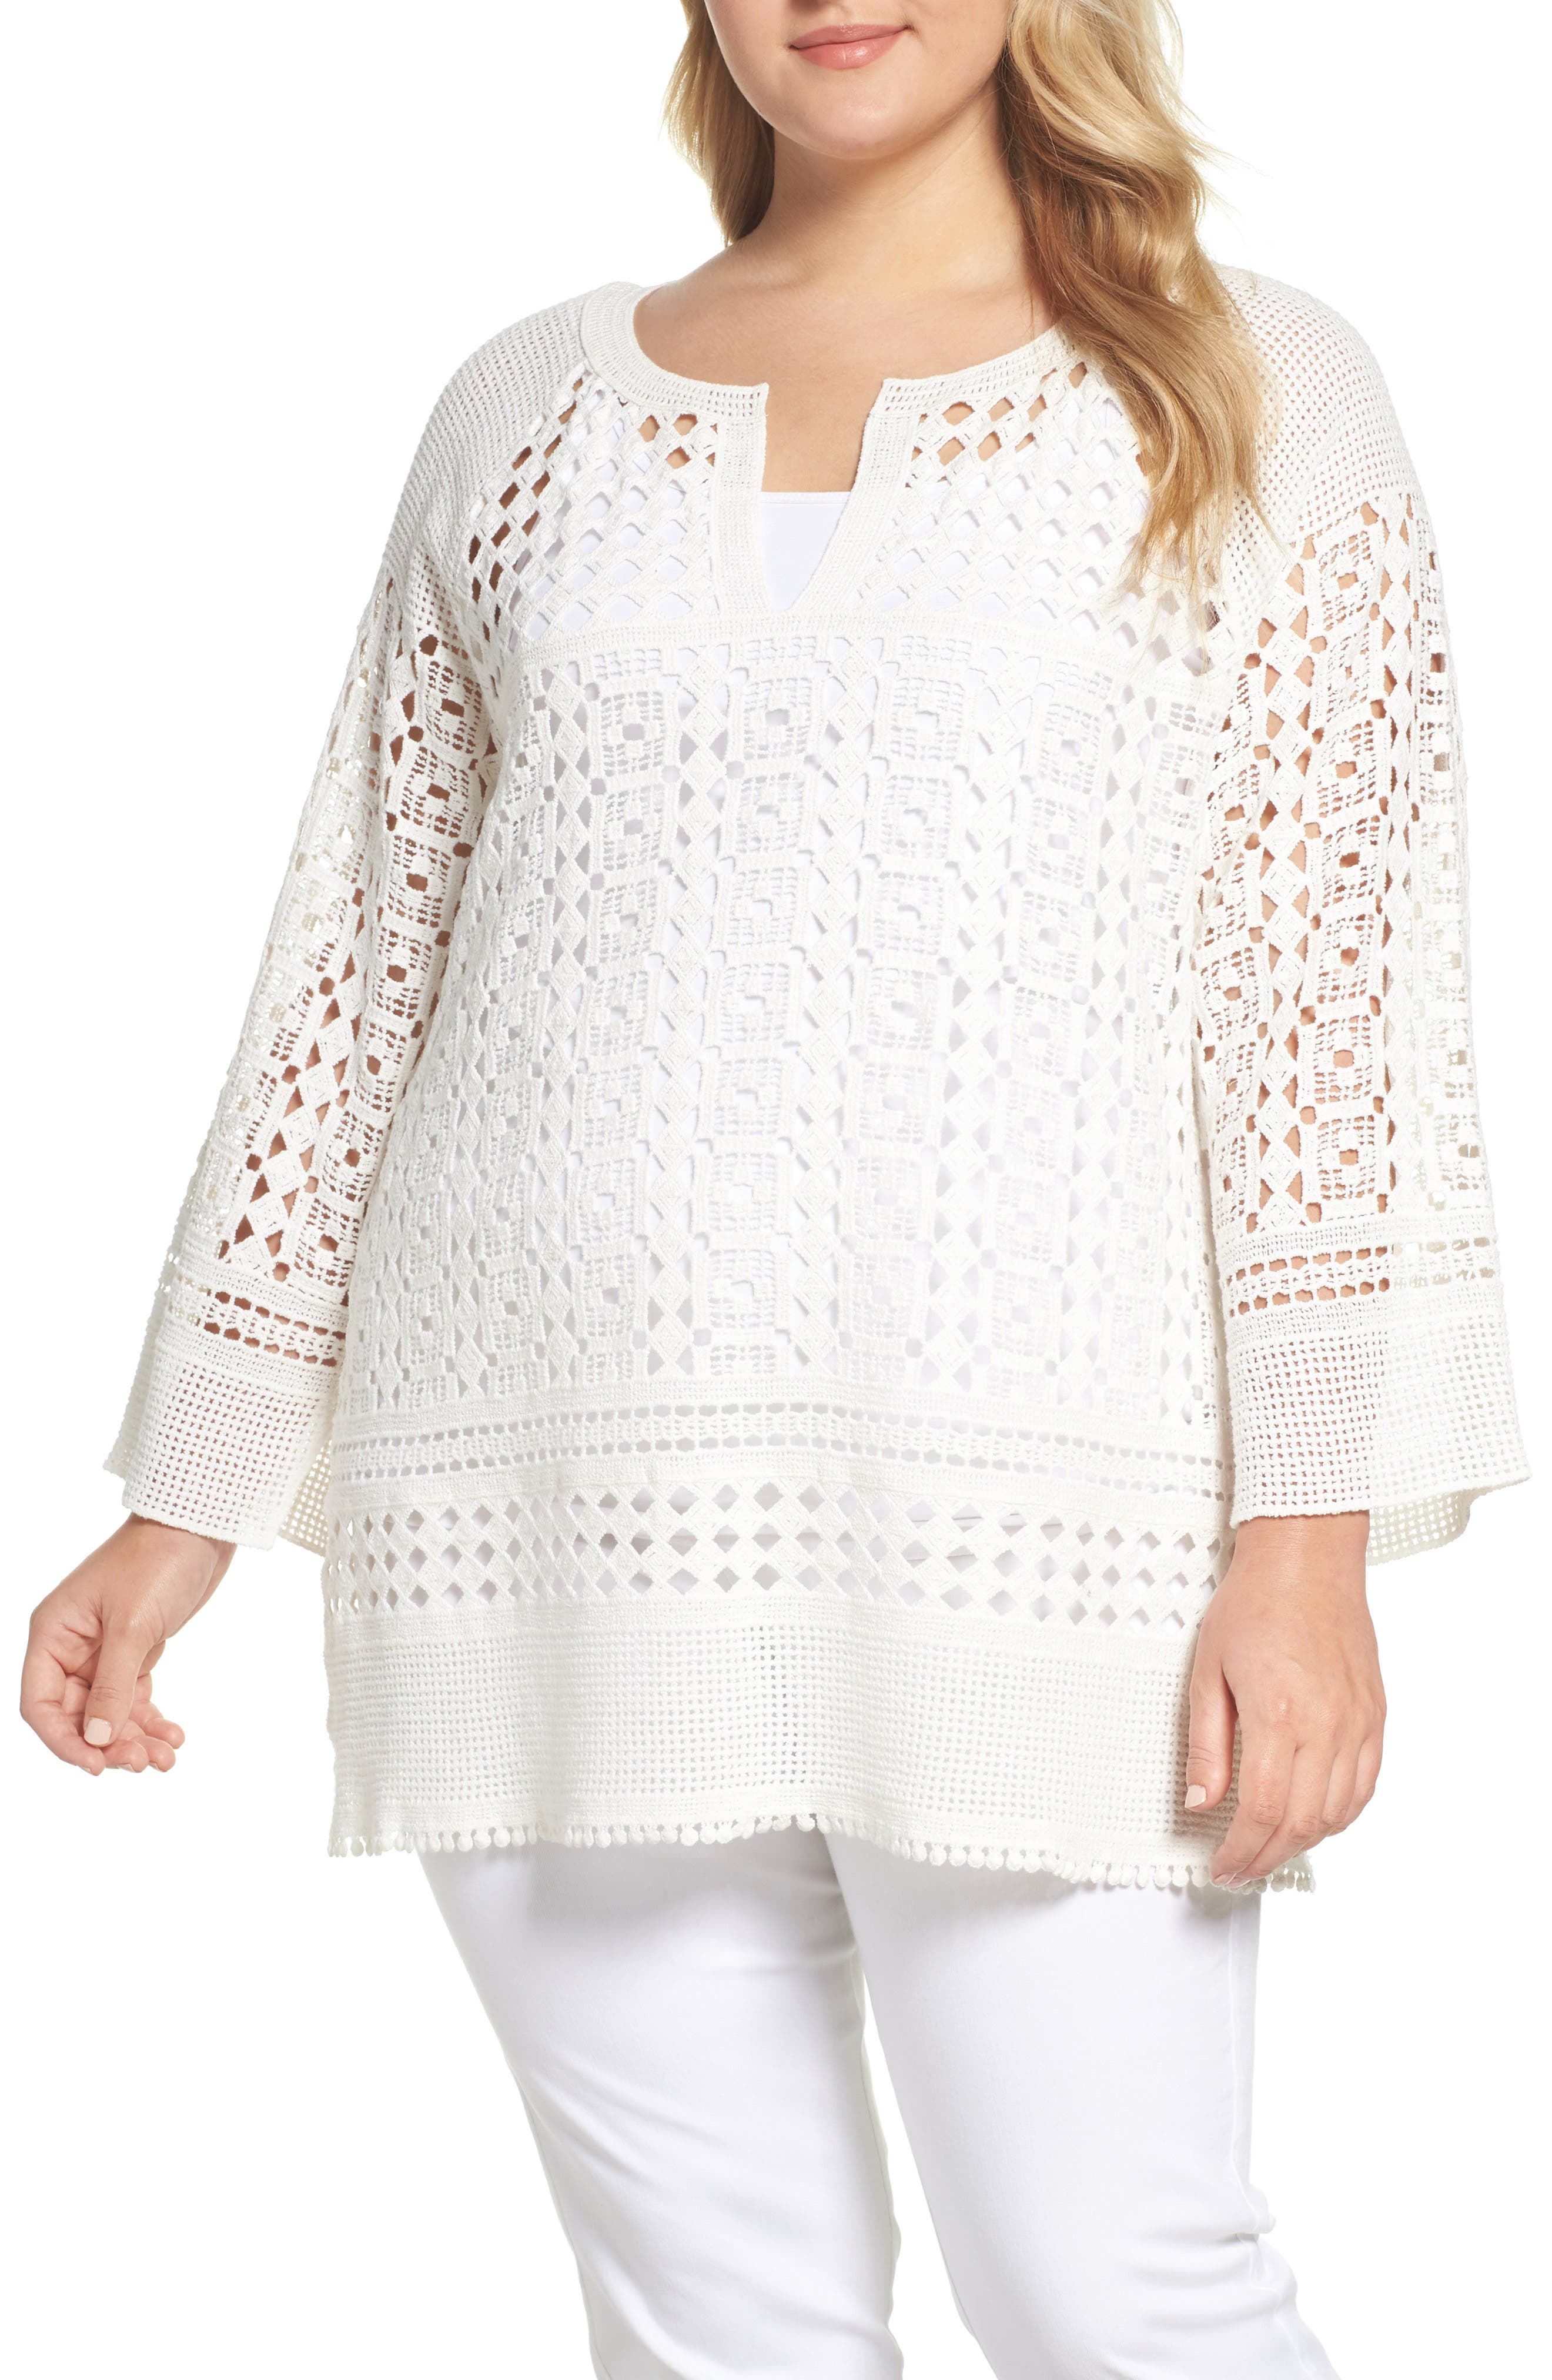 Free Spirit Lace Tunic,                         Main,                         color, Paper Whit